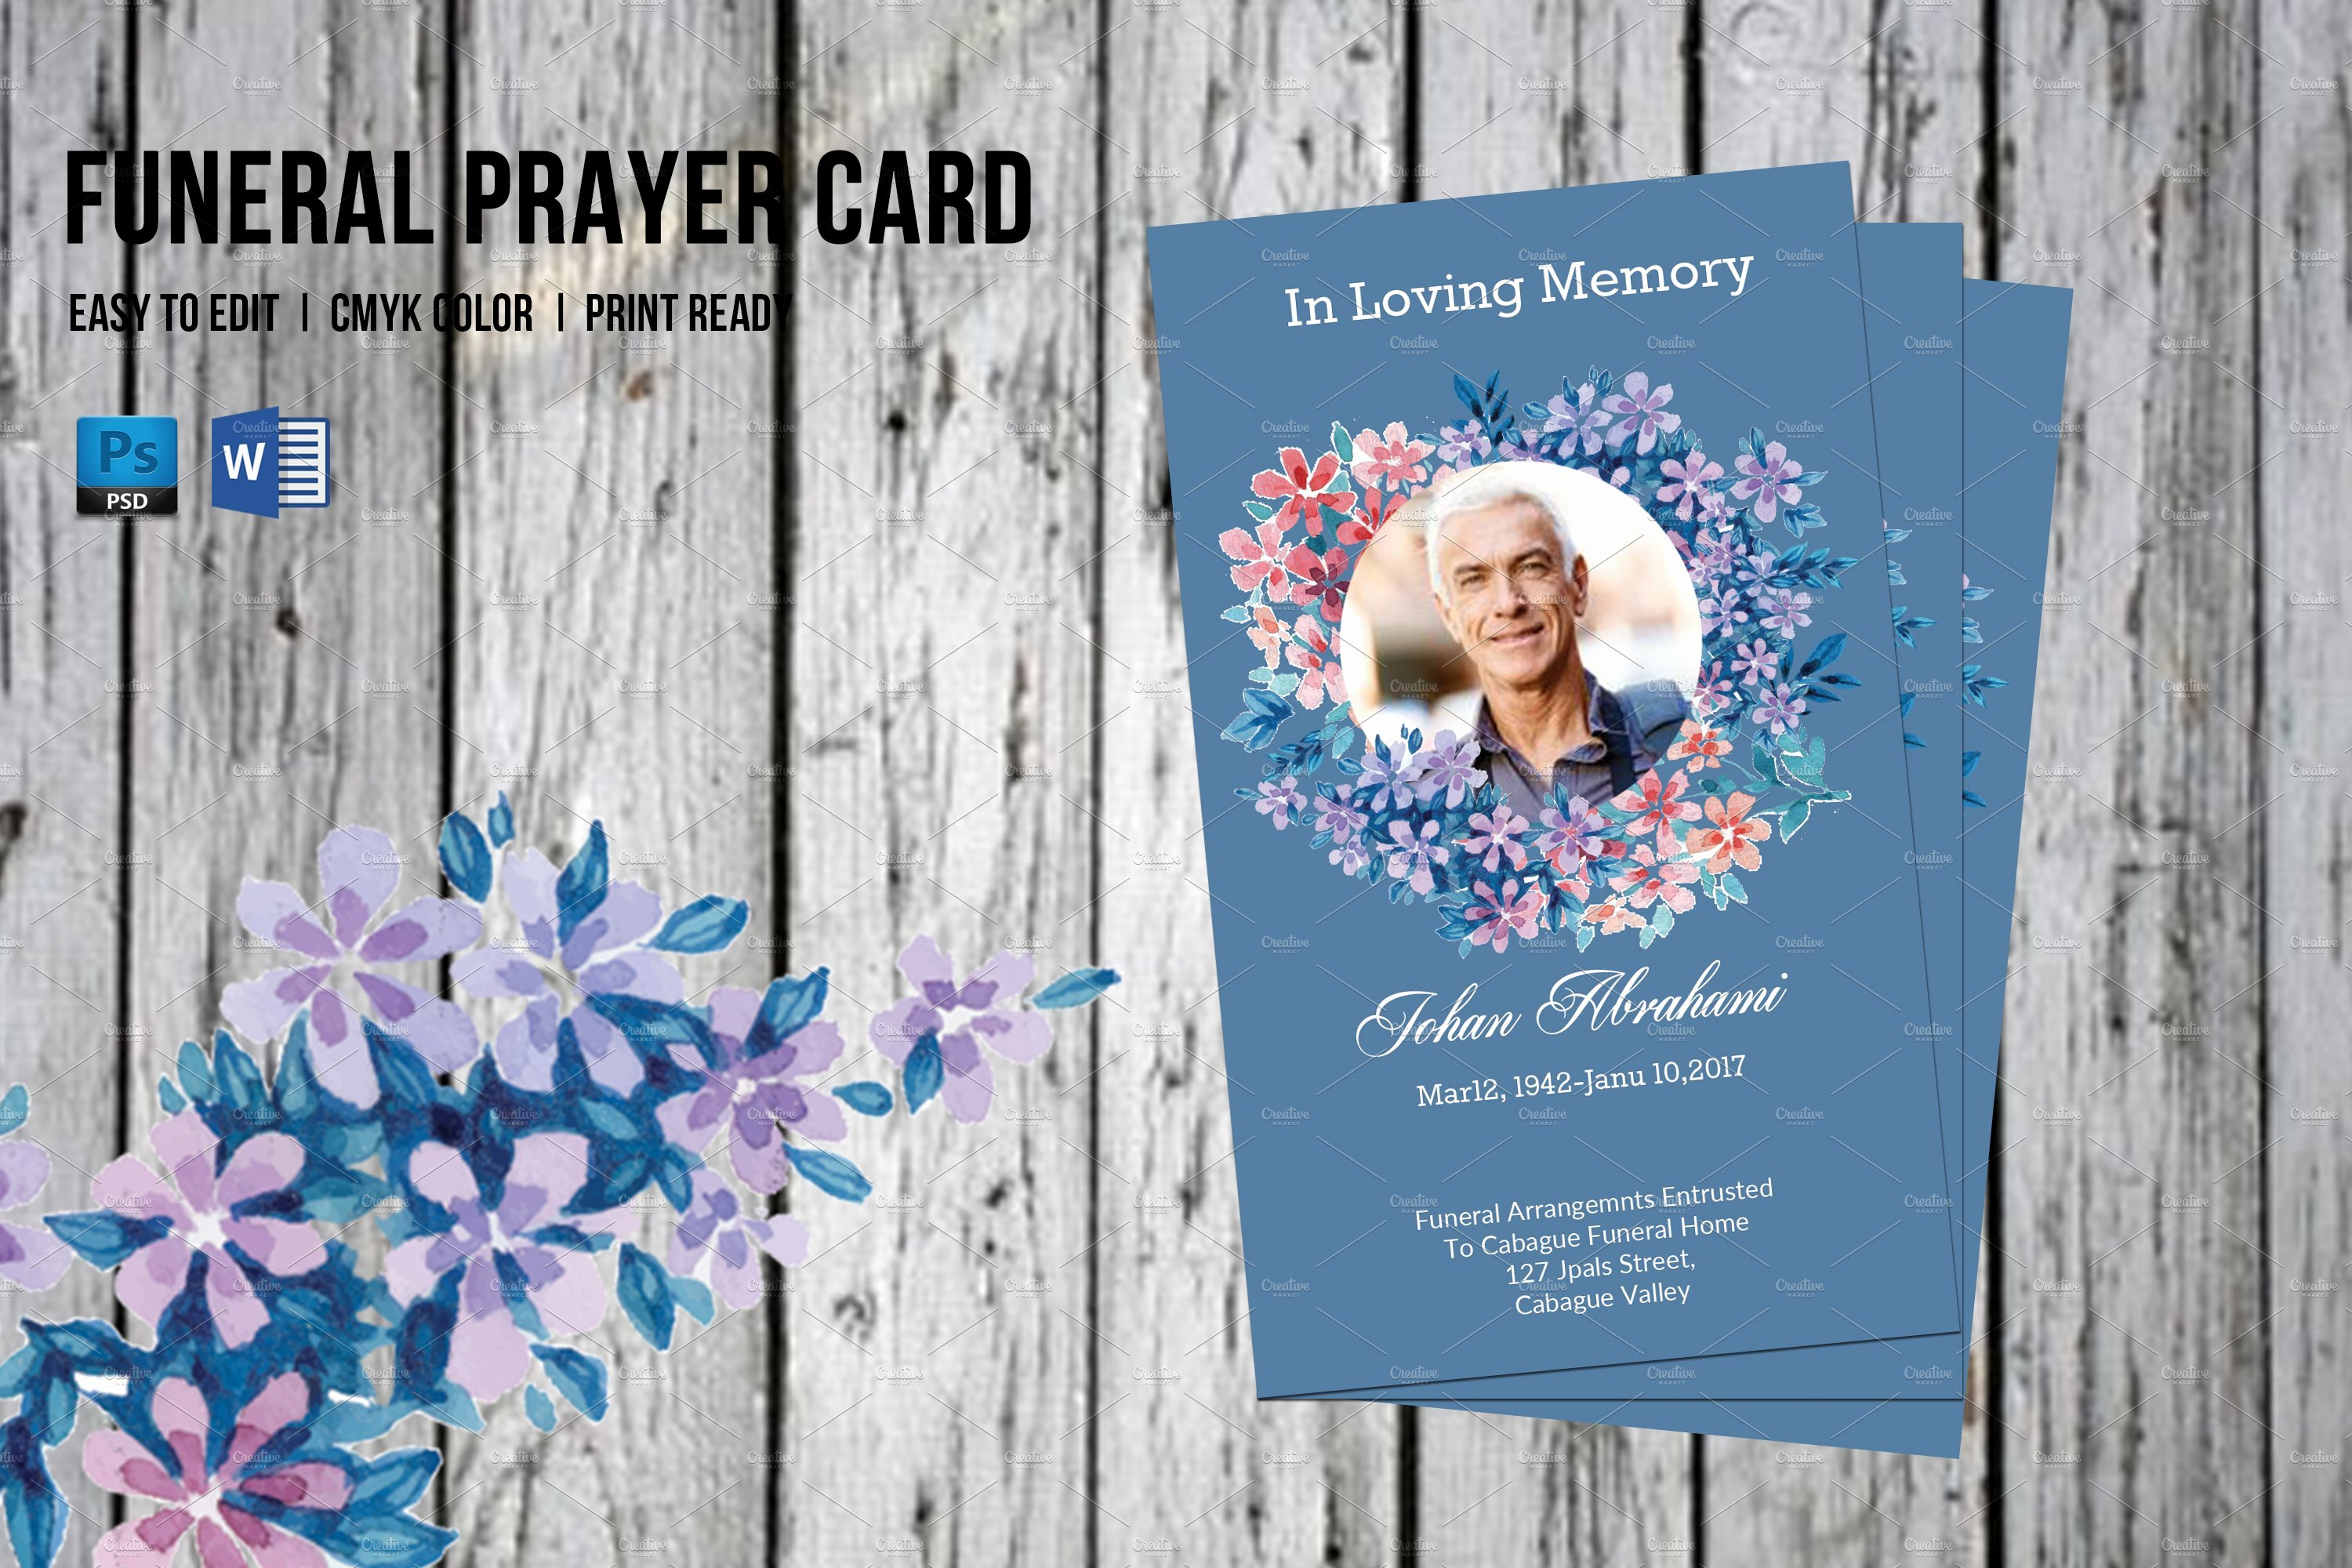 Funeral Prayer Cards Templates Fresh Funeral Prayer Card Template V555 Flyer Templates